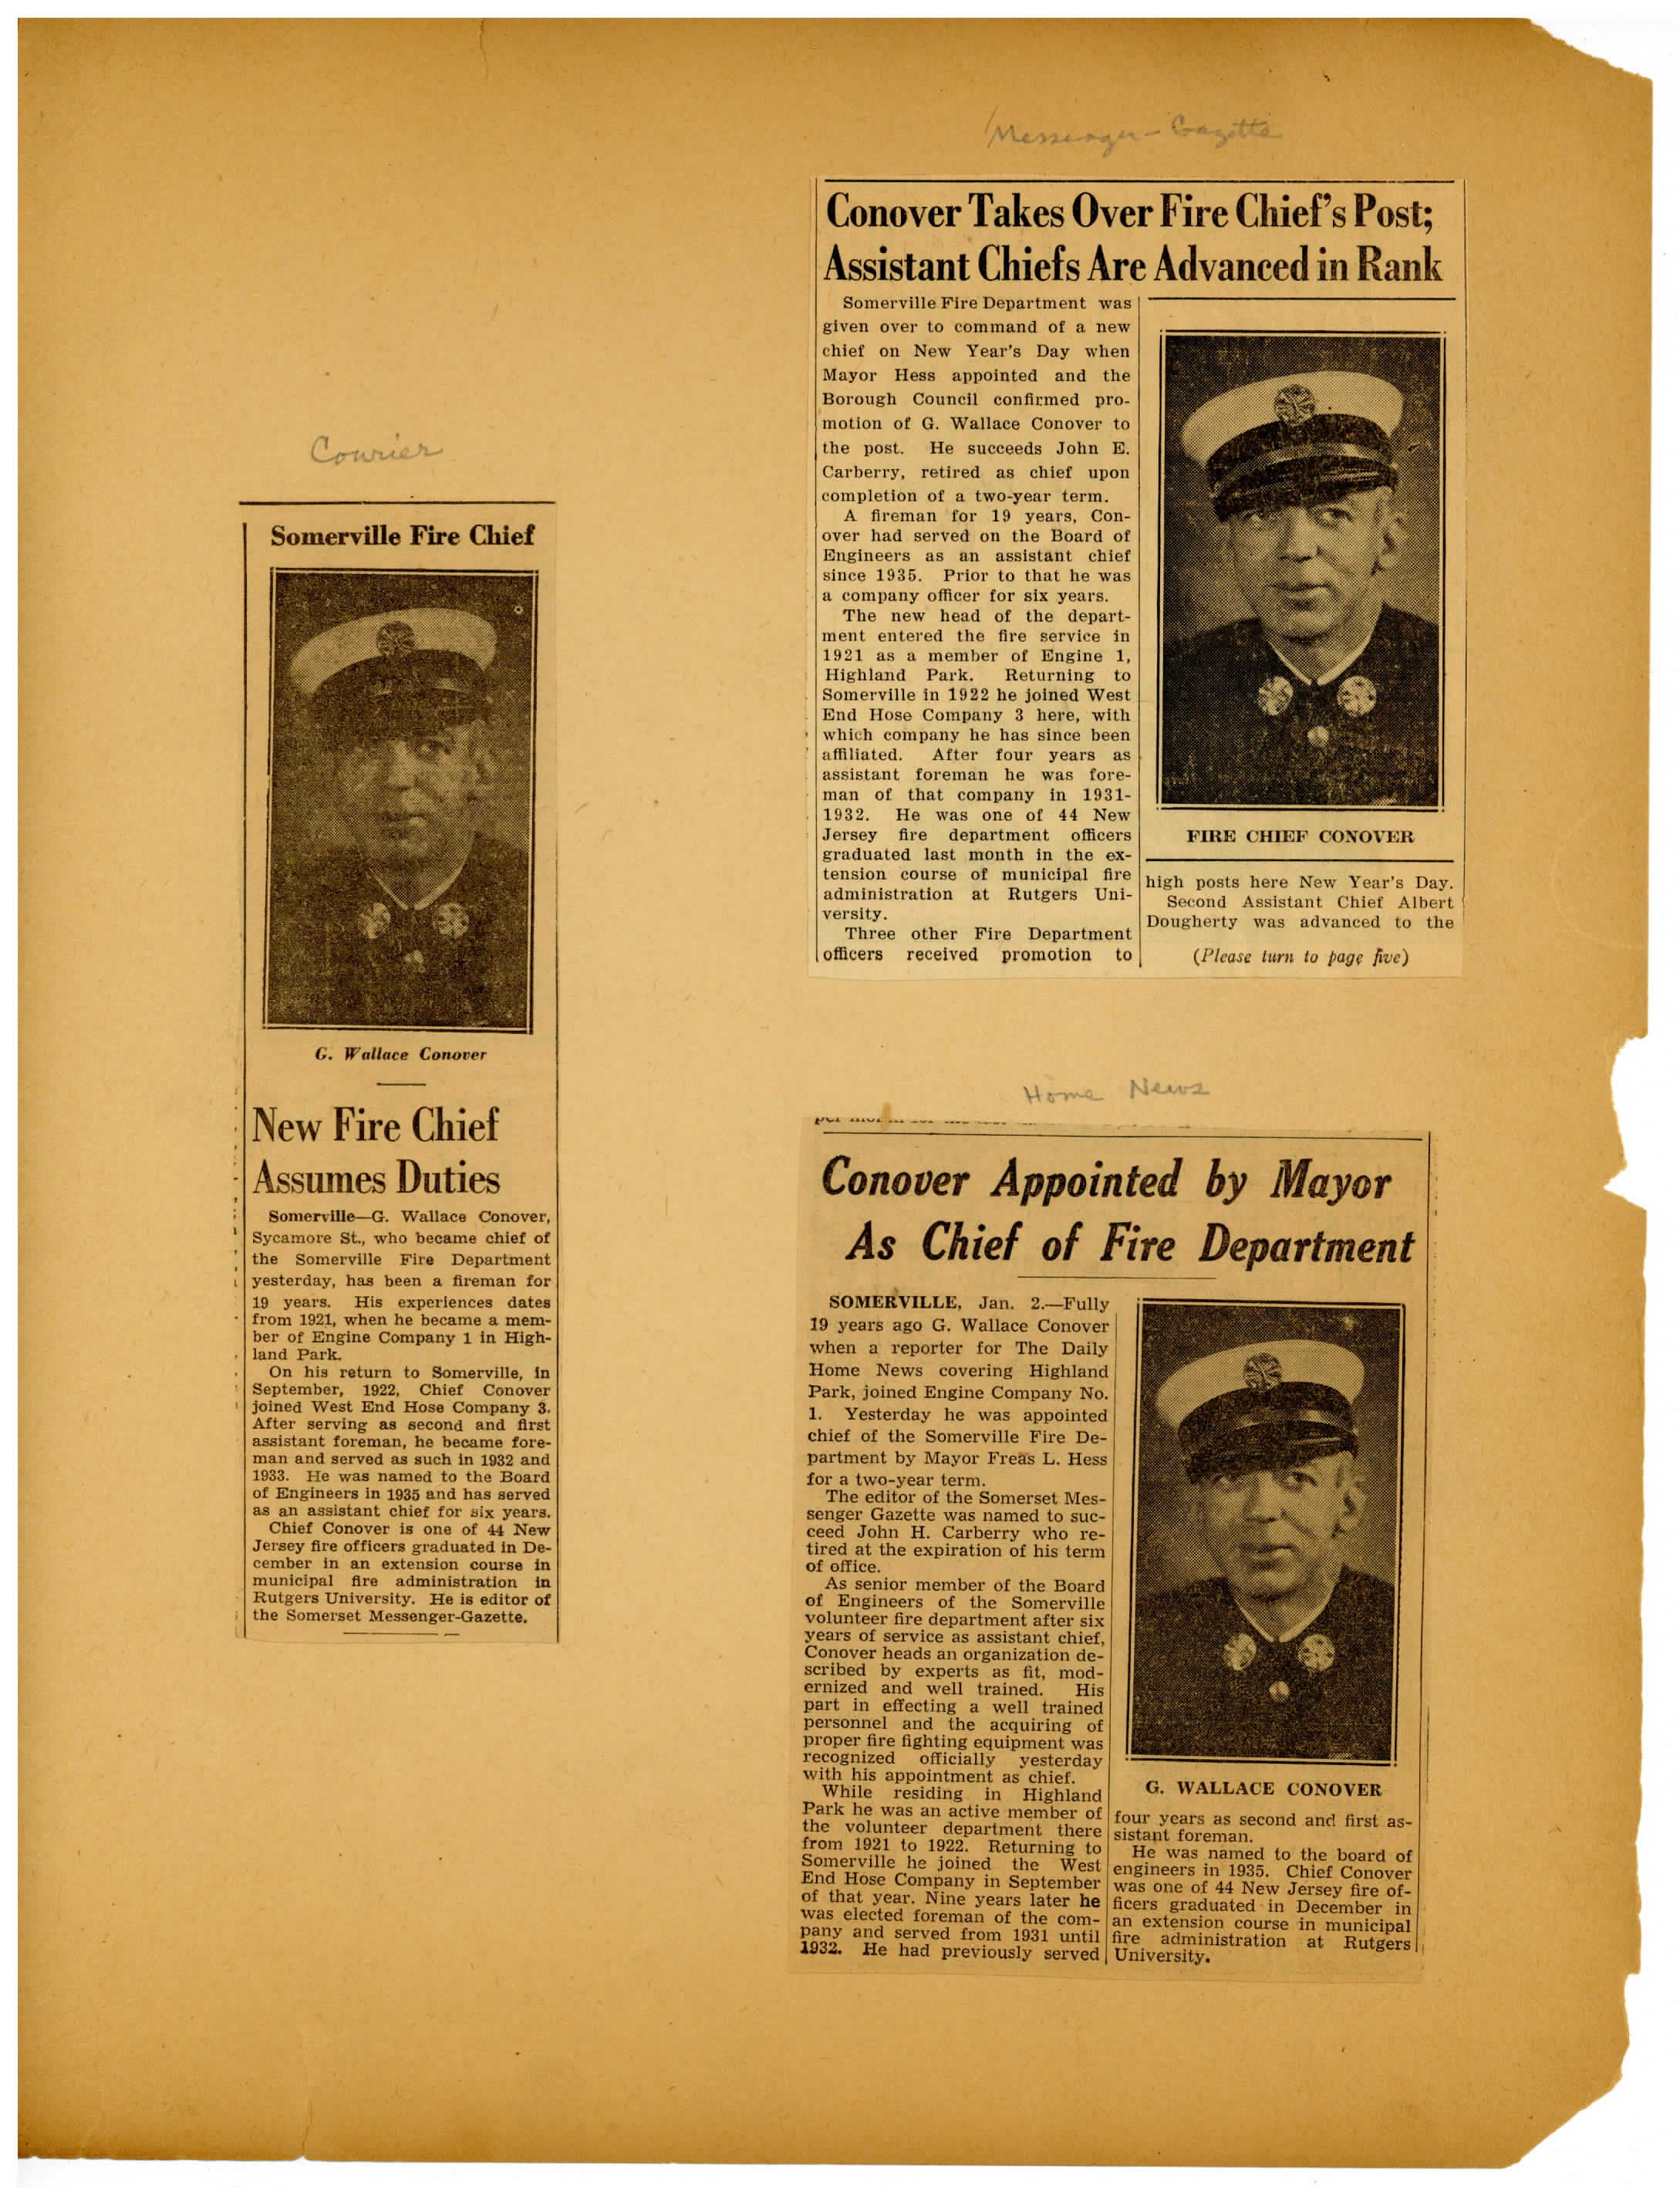 1940s Fire Chief Conover Scrap Book 1st half_Page_04_Image_0001.jpg